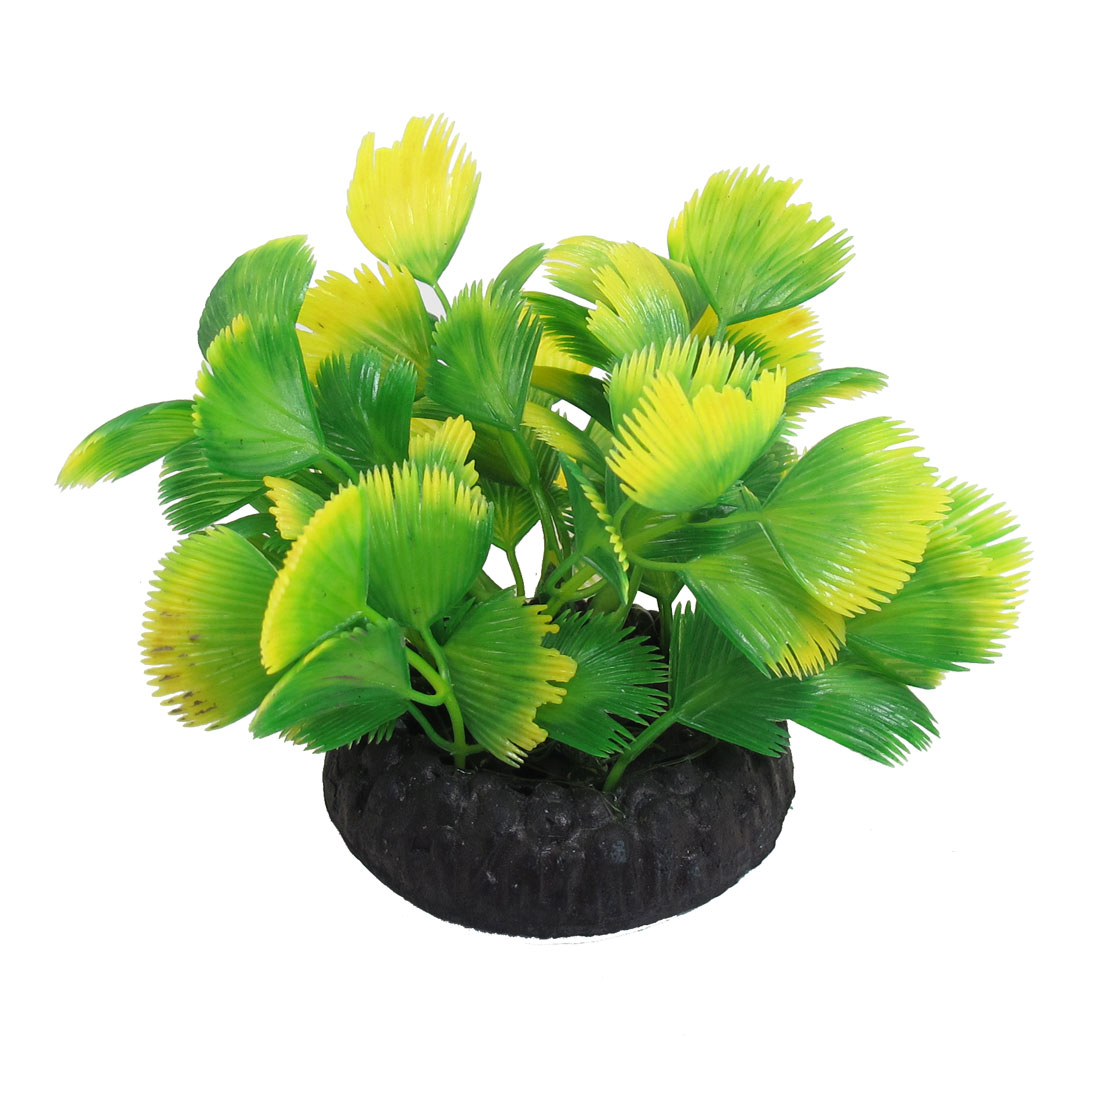 Manmade-Plastic-Yellow-Green-3-9-Height-Plants-for-Fish-Tank